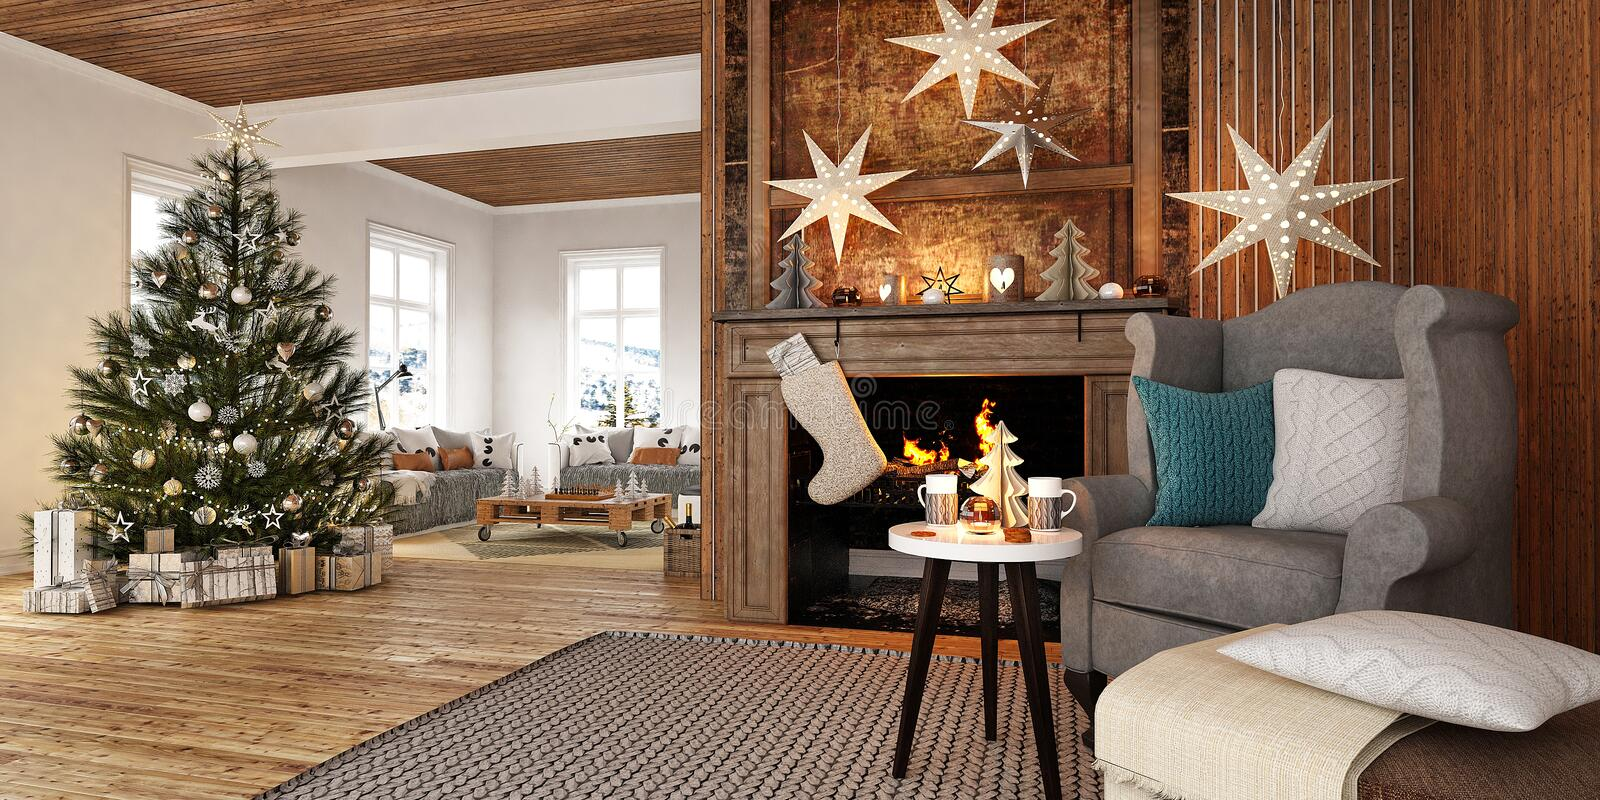 New year tree in scandinavian style interior with christmas decoration and fireplace stock images